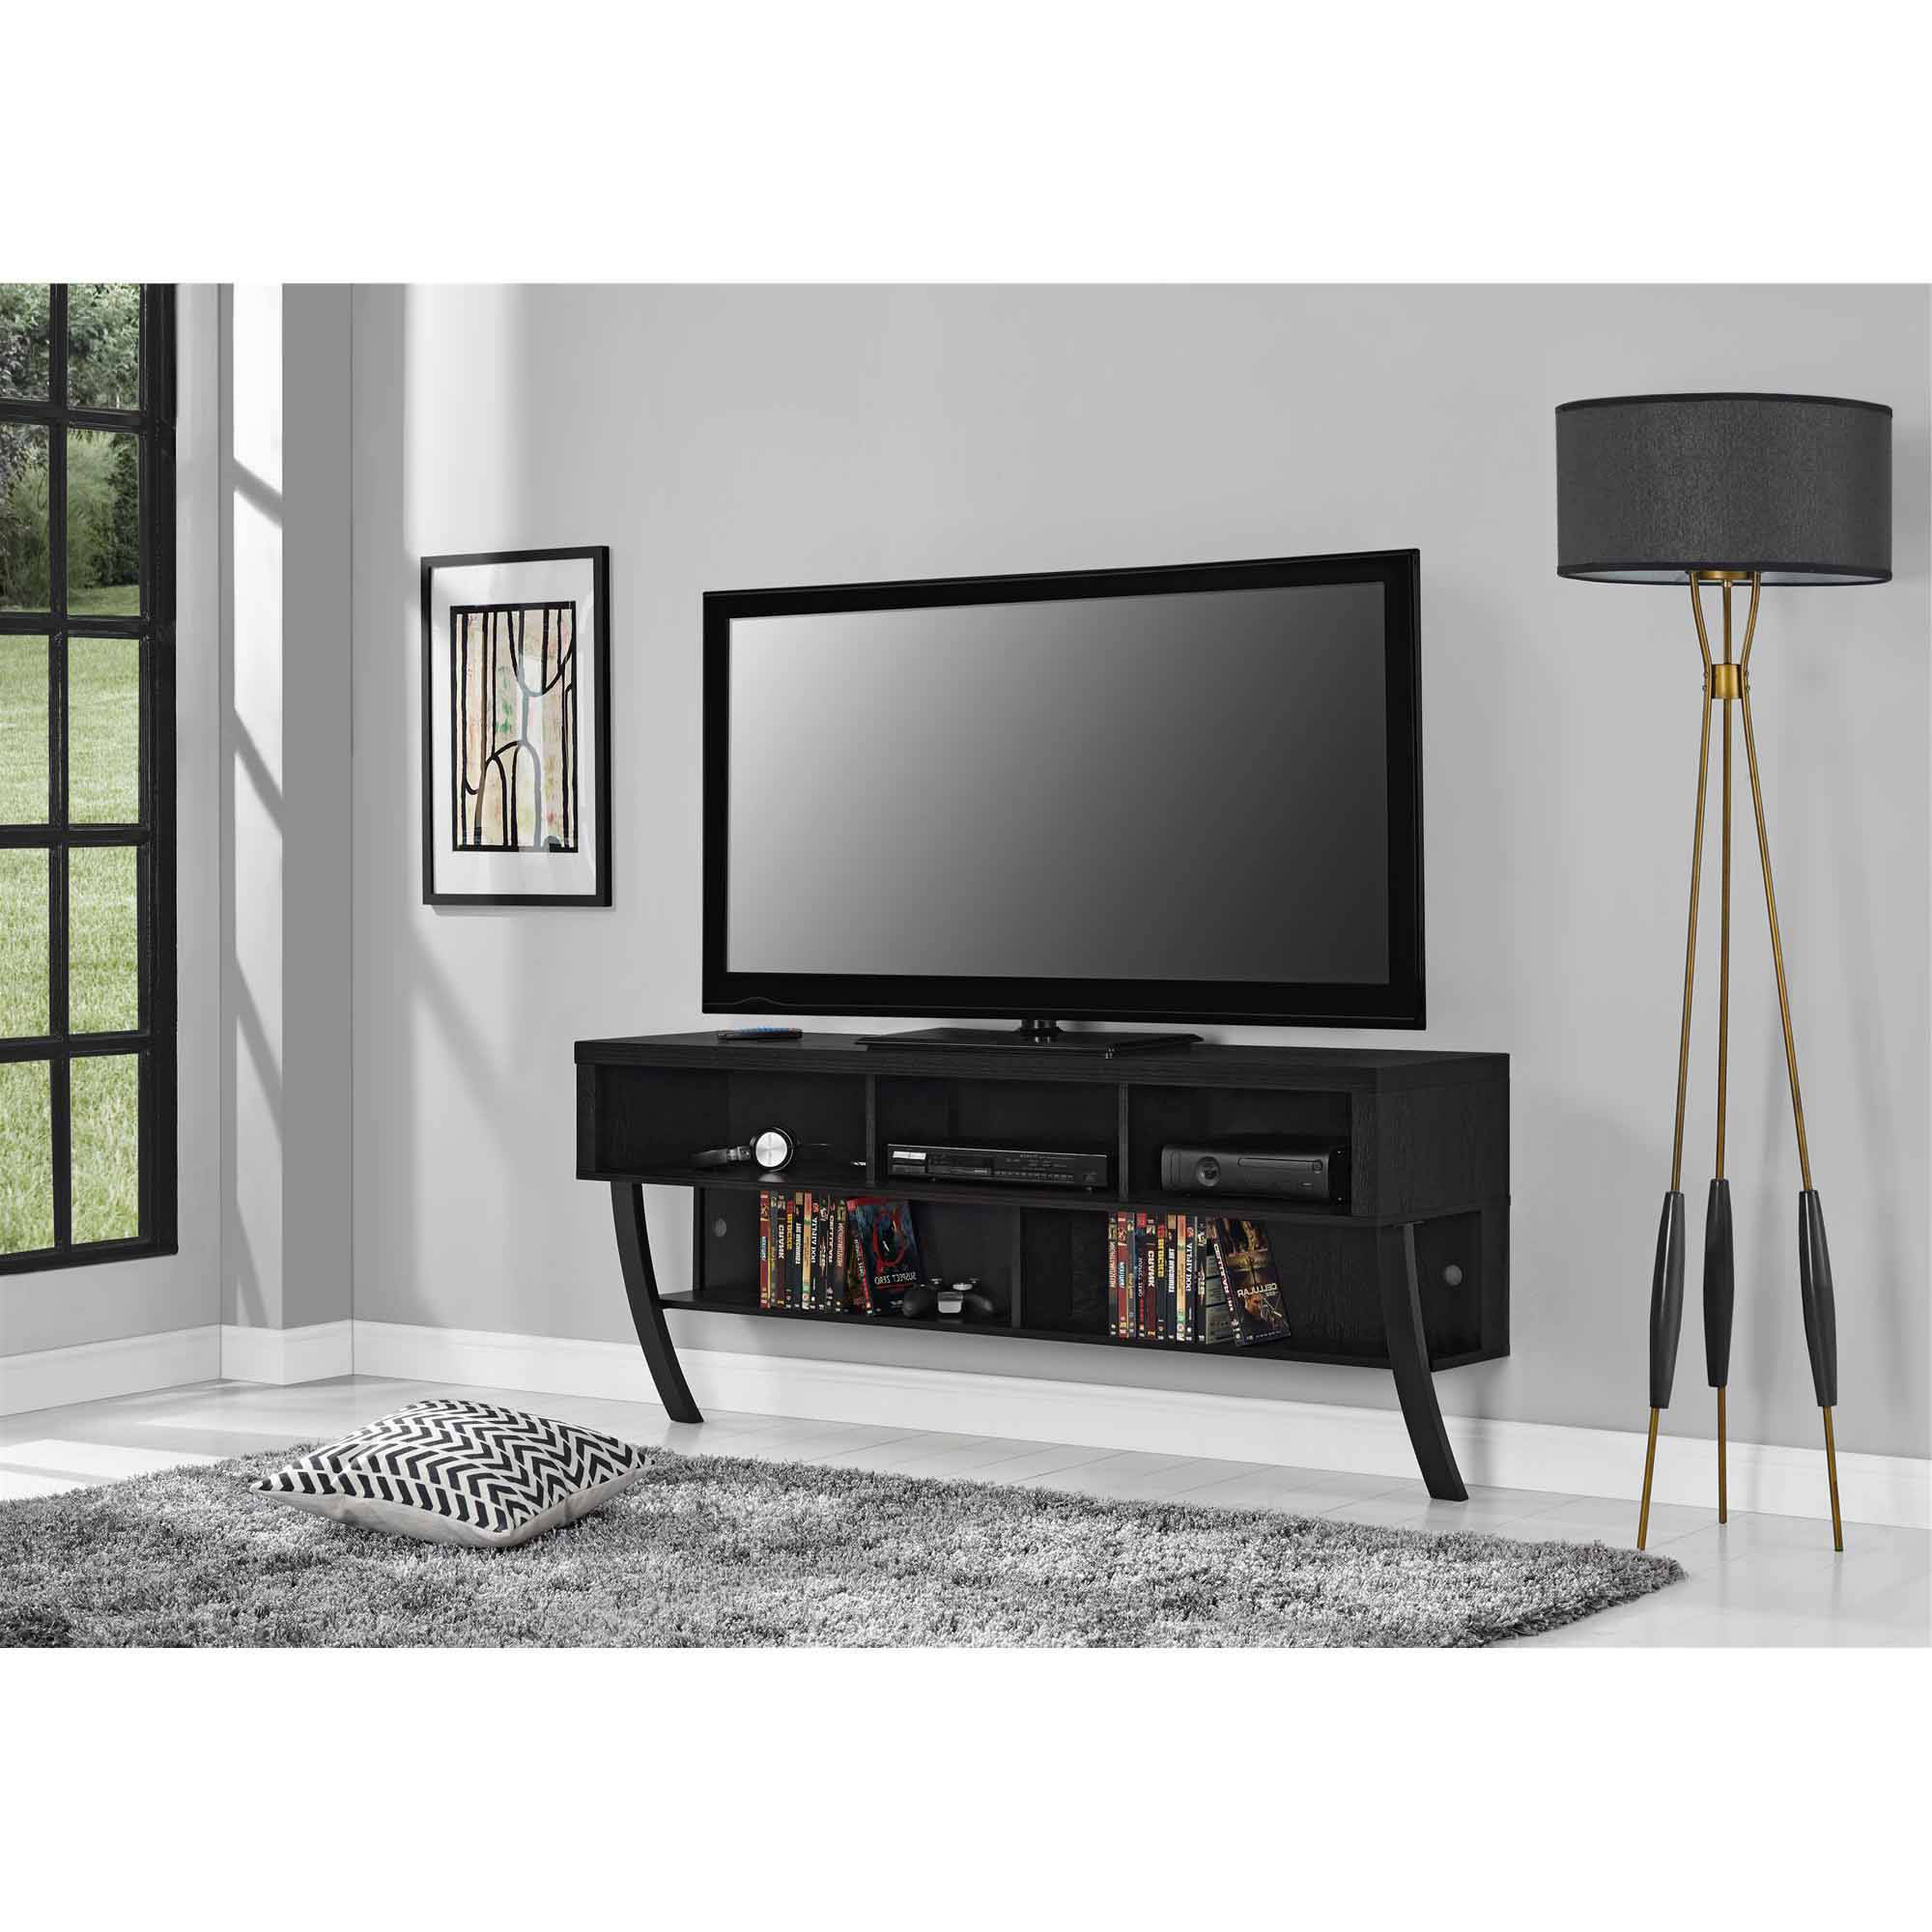 "Well Known Altra Asher Wall Mounted 65"" Tv Stand, Black Oak – Walmart In Wall Mounted Tv Stands For Flat Screens (View 2 of 20)"